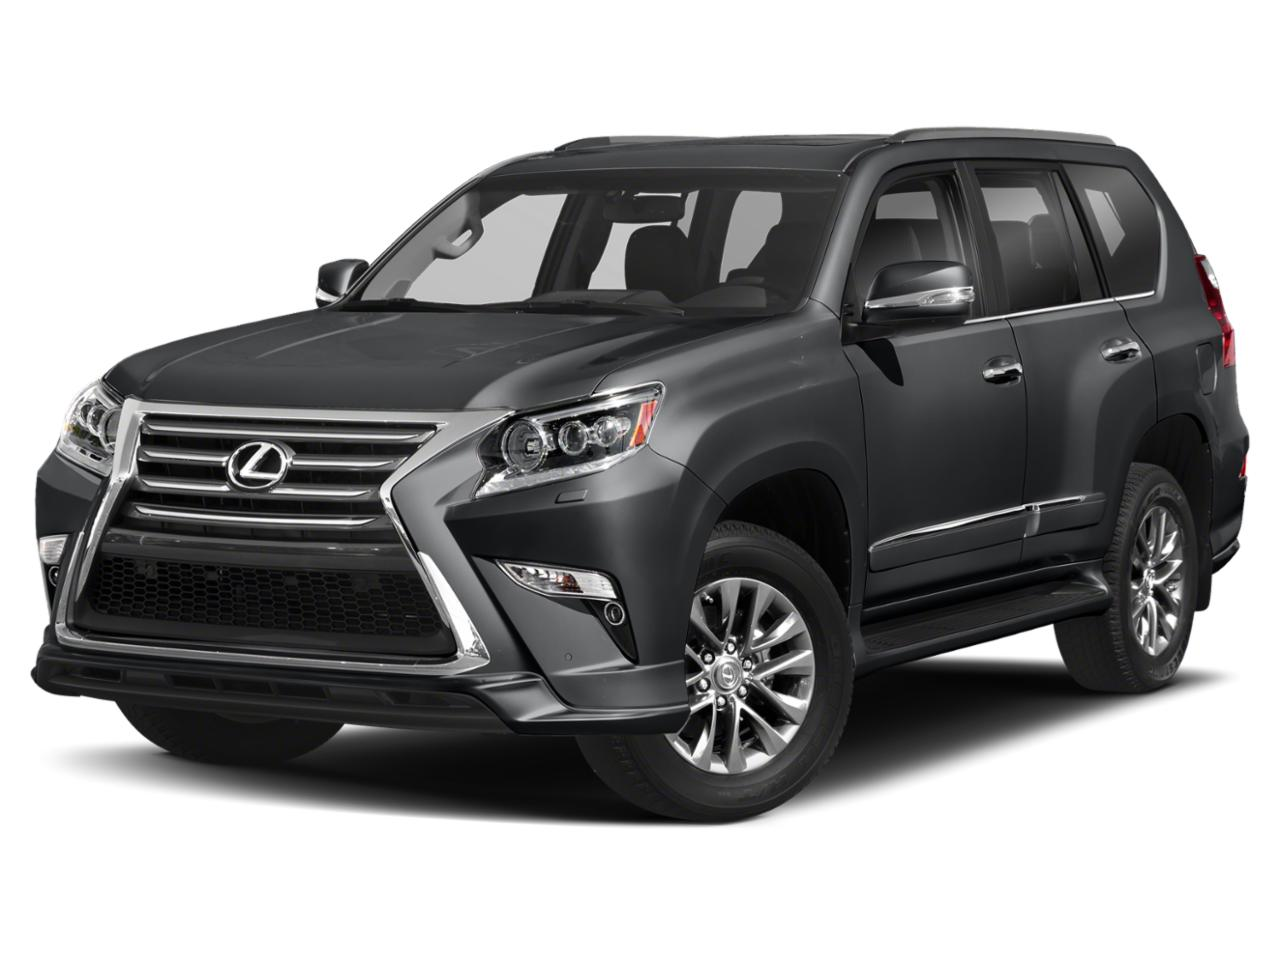 2018 Lexus GX 460 Vehicle Photo in Wendell, NC 27591